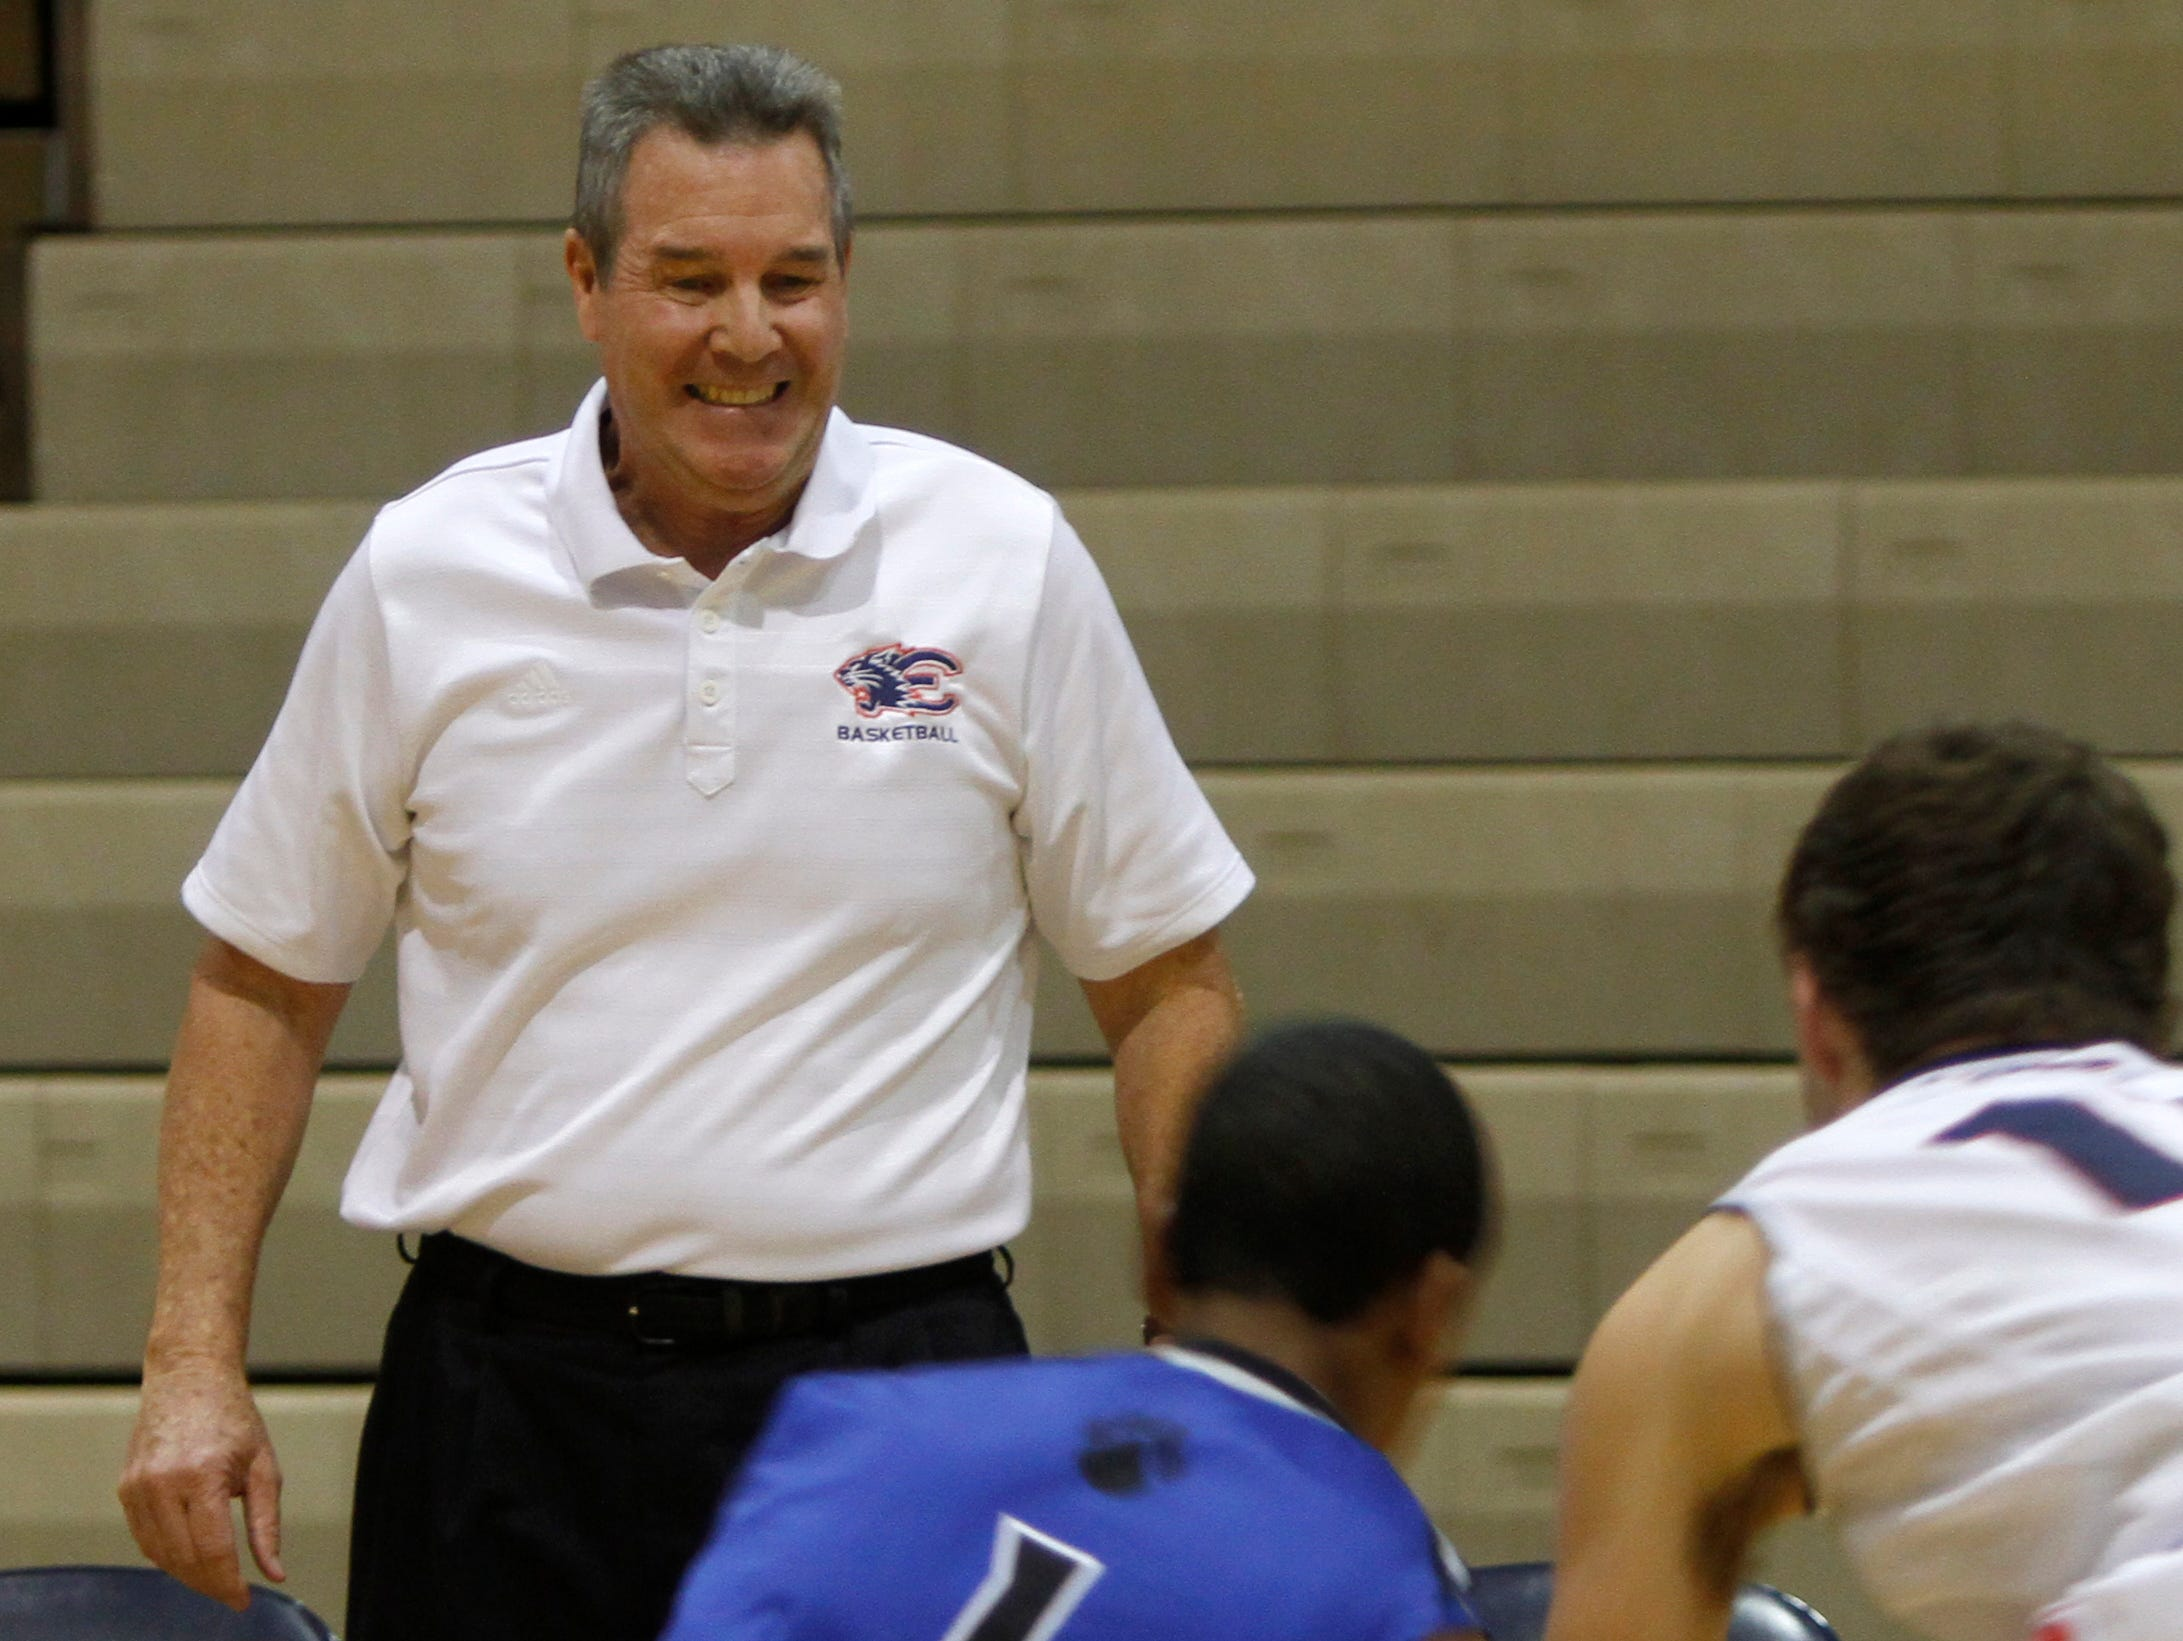 Estero boys basketball coach Lee Peters prepares to jump out of the way when the action gets close against Canterbury Wednesday in Estero.